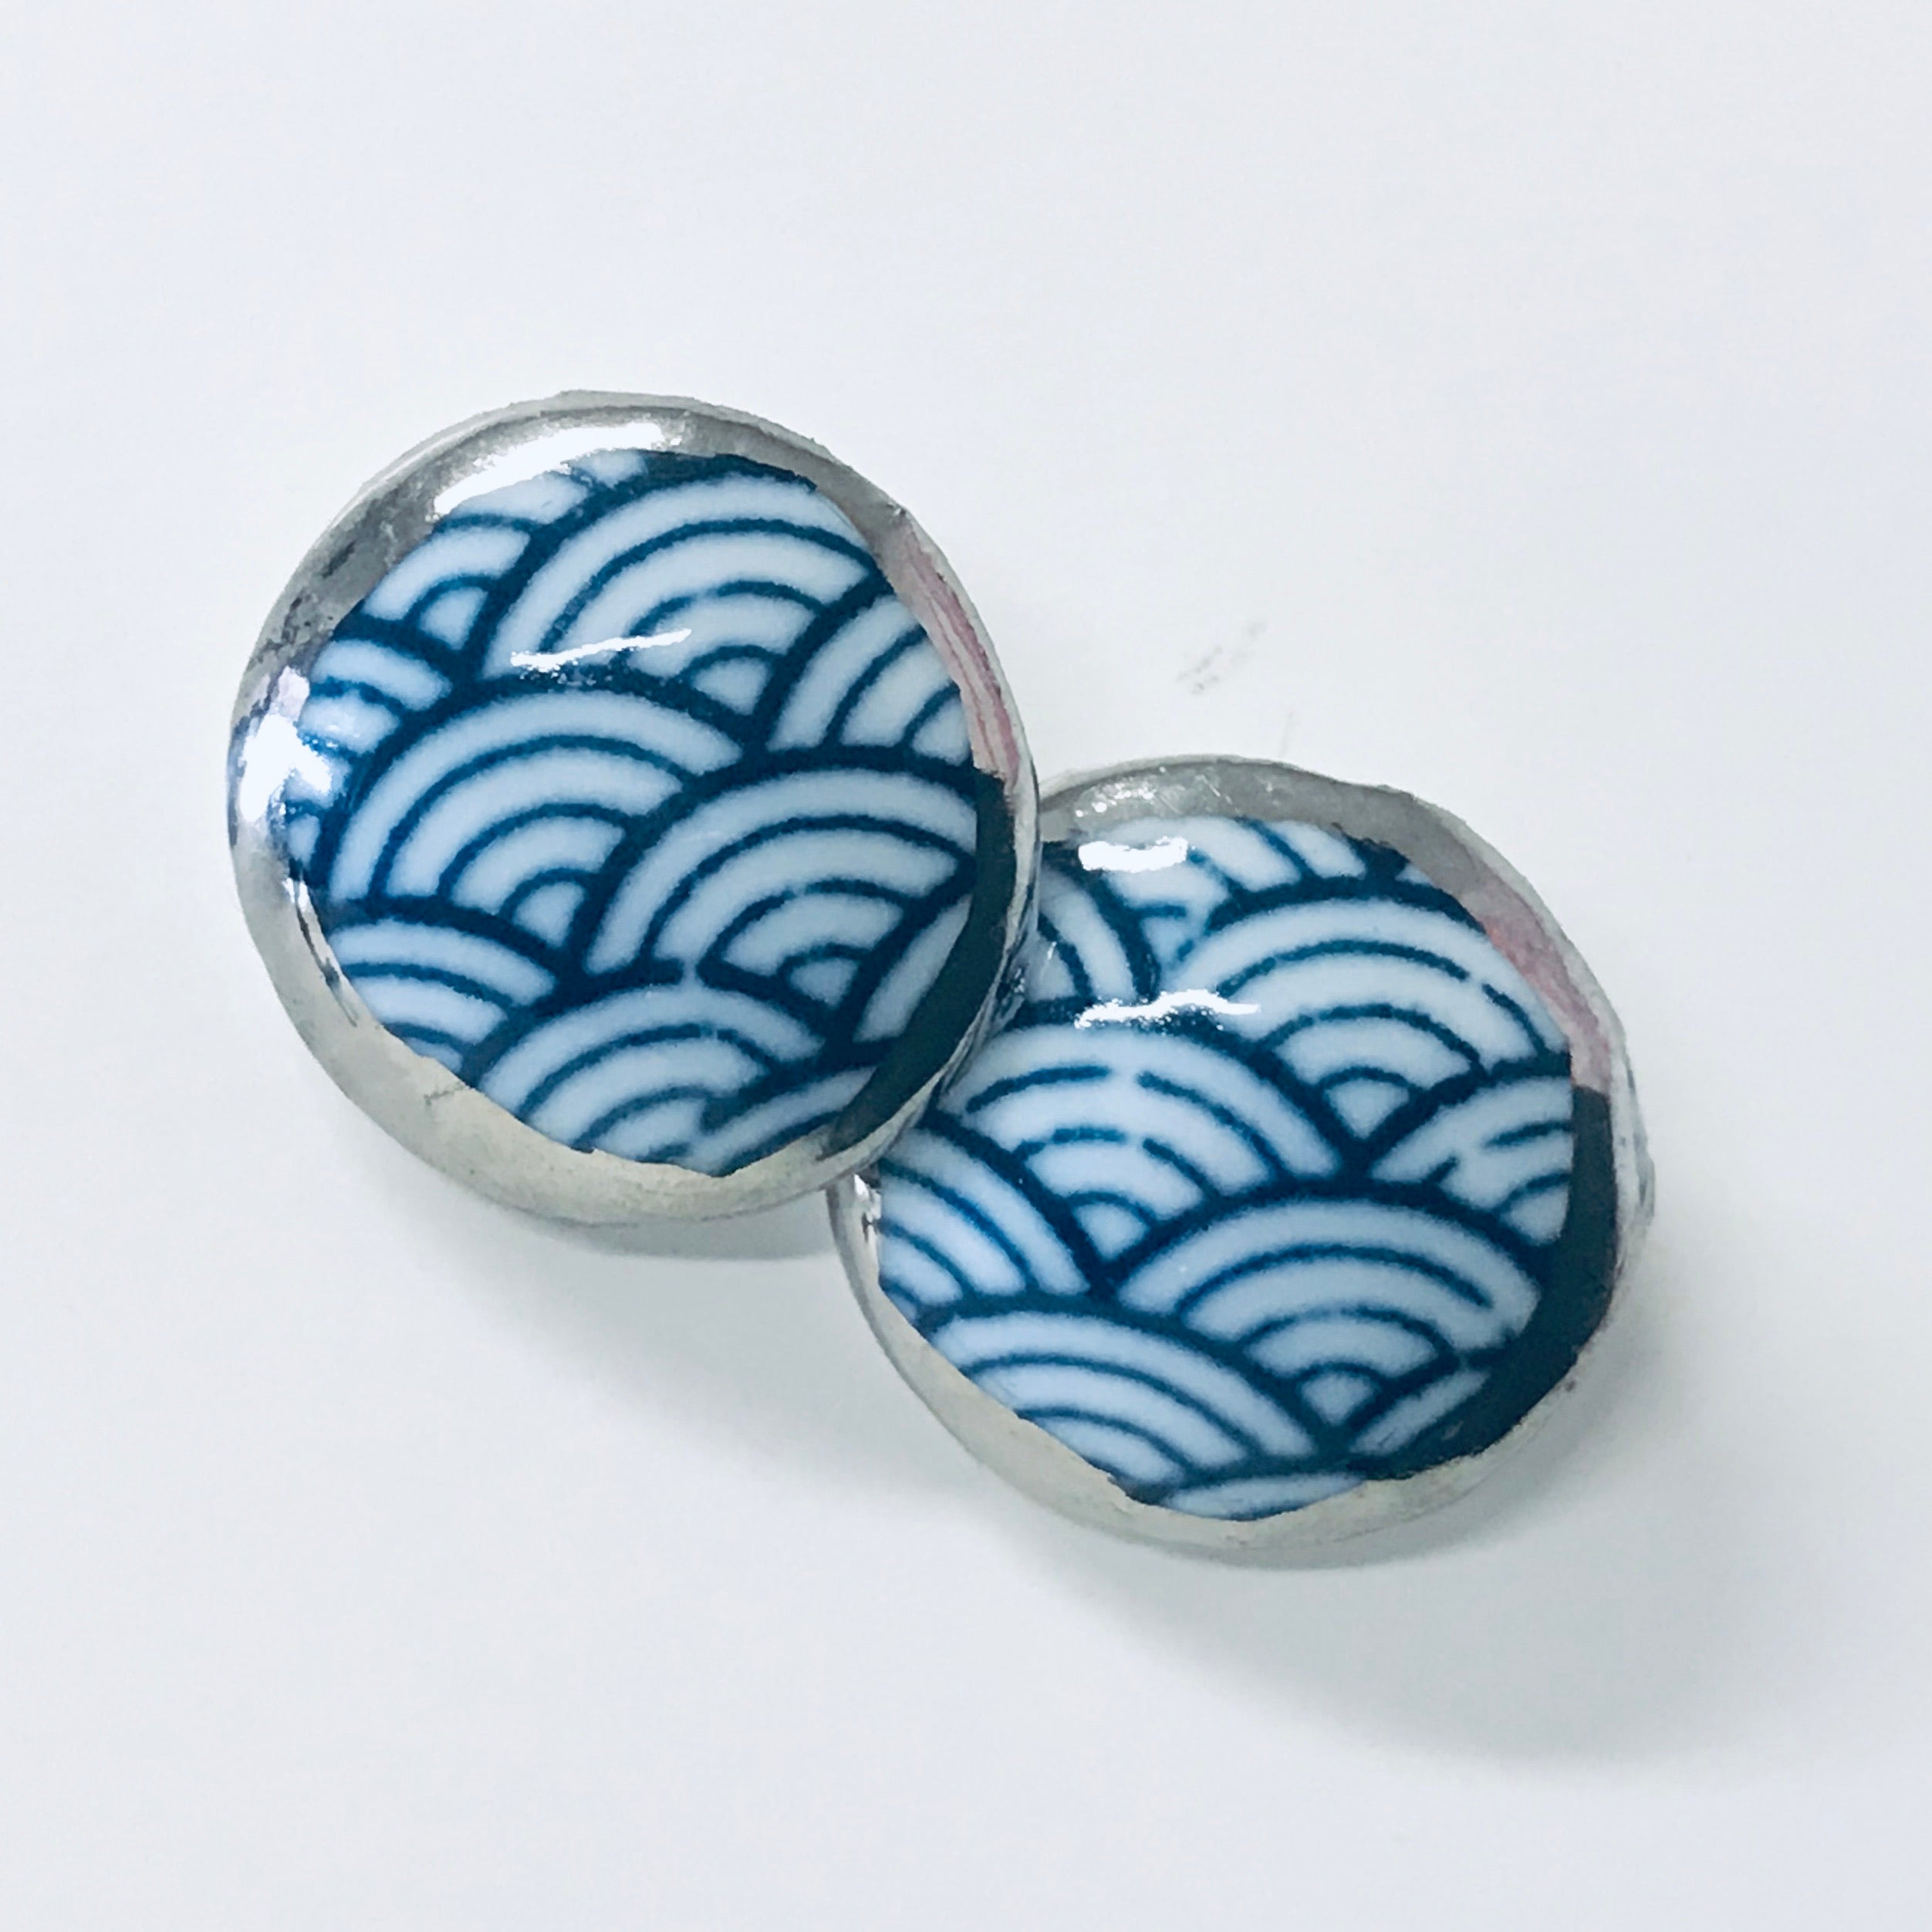 Hand painted Ceramic Stud Earrings - large